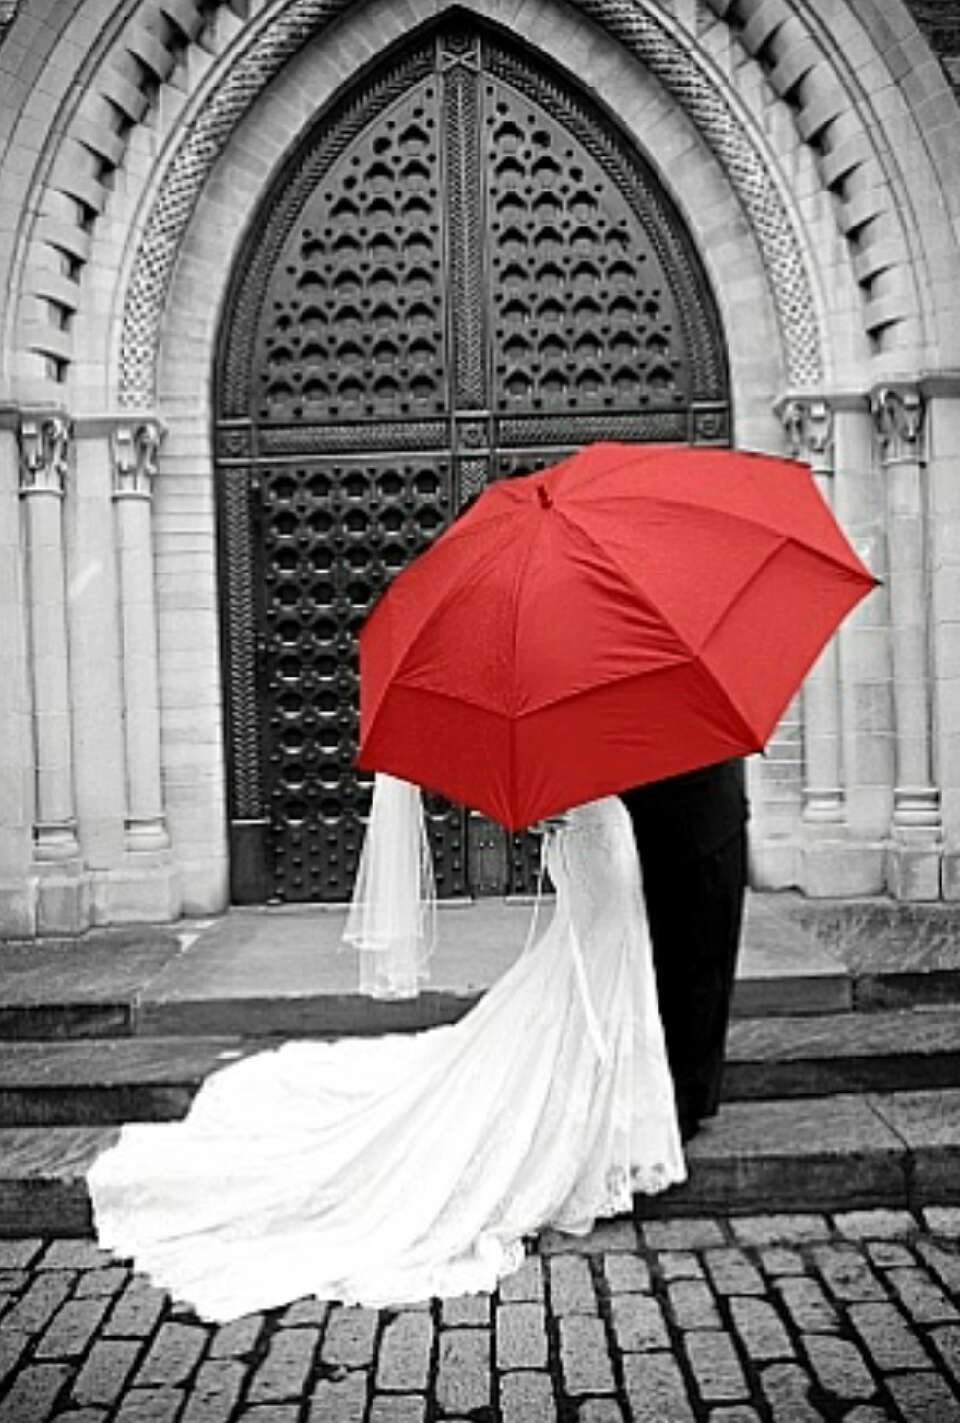 Black and White Wedding Photography With Color Accents ...